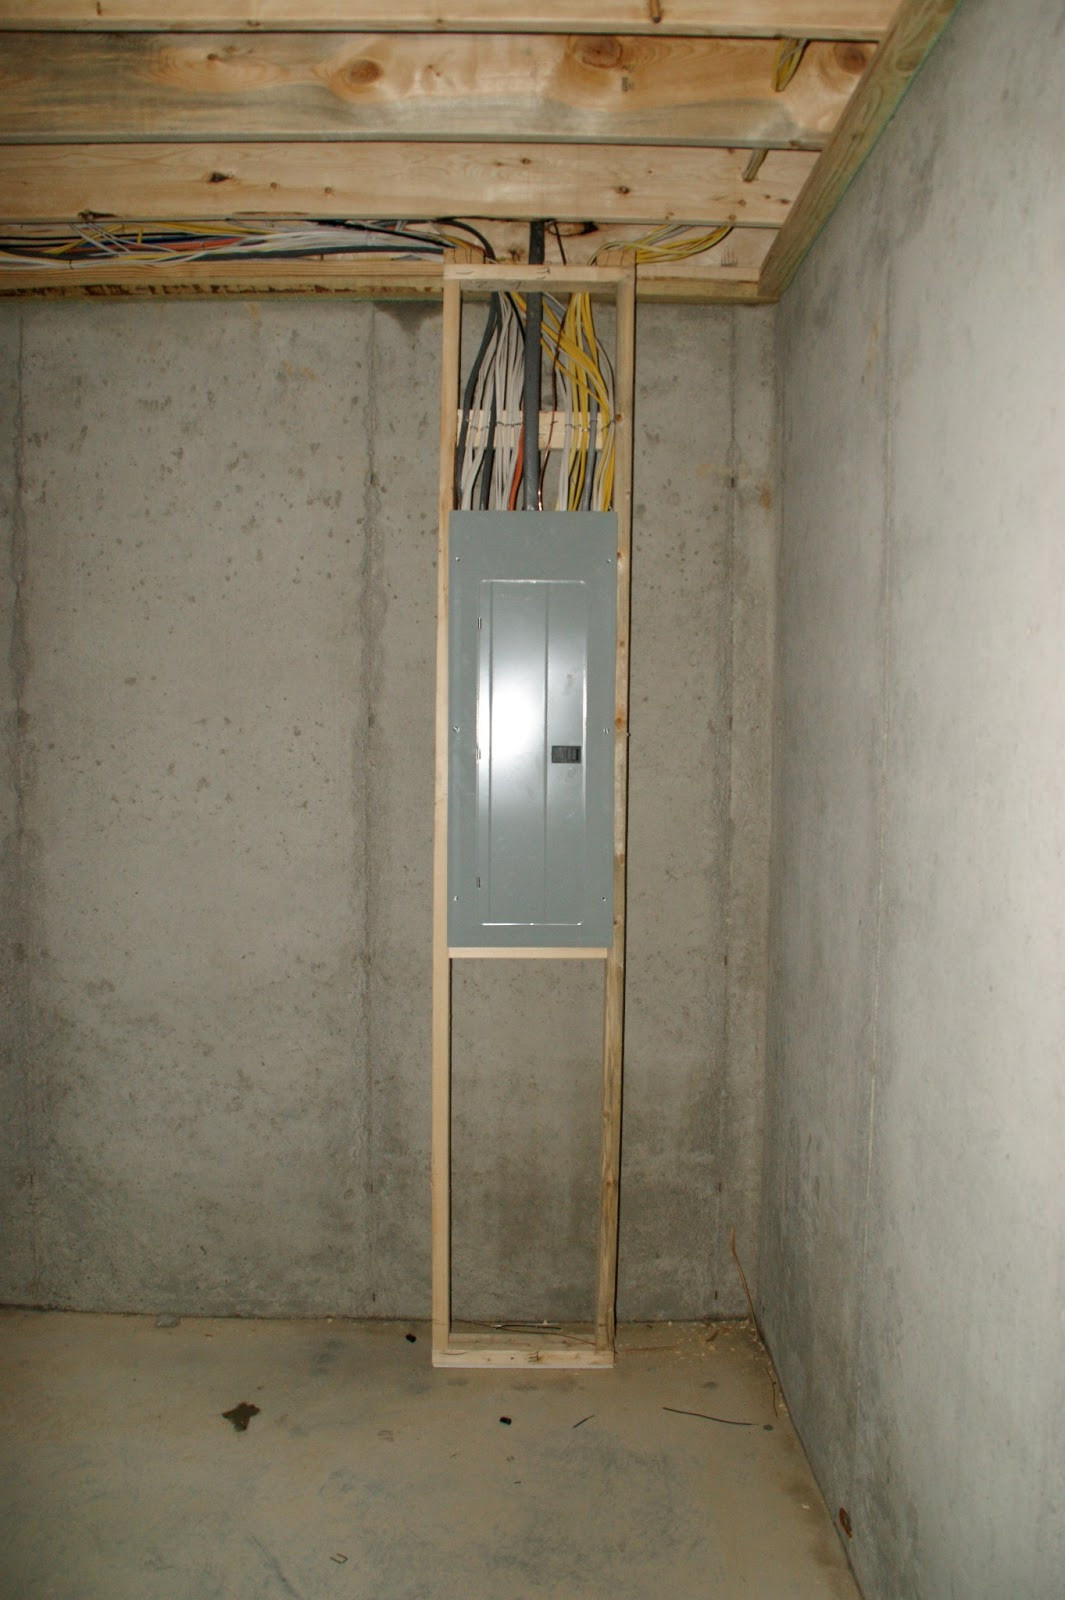 Framing Around Electrical Panel To Main Diy Chatroom Home Improvement Forum Building Our Heavenly Highgrove Day 39 40 2